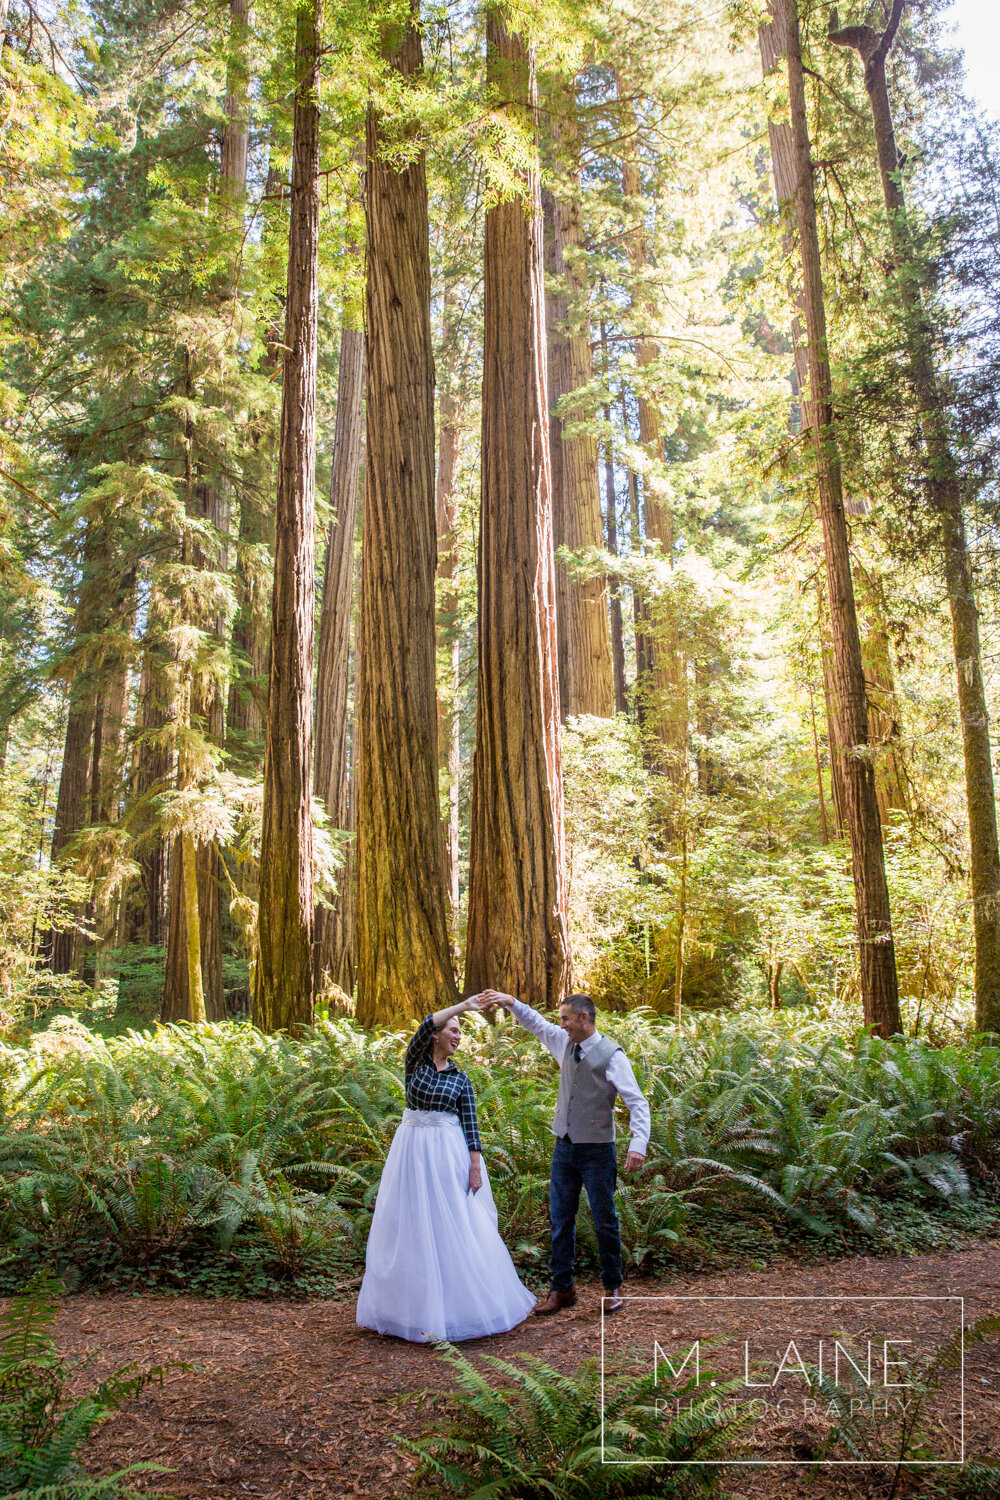 jedediah-smith-redwoods-state-park-wedding-3493.jpg